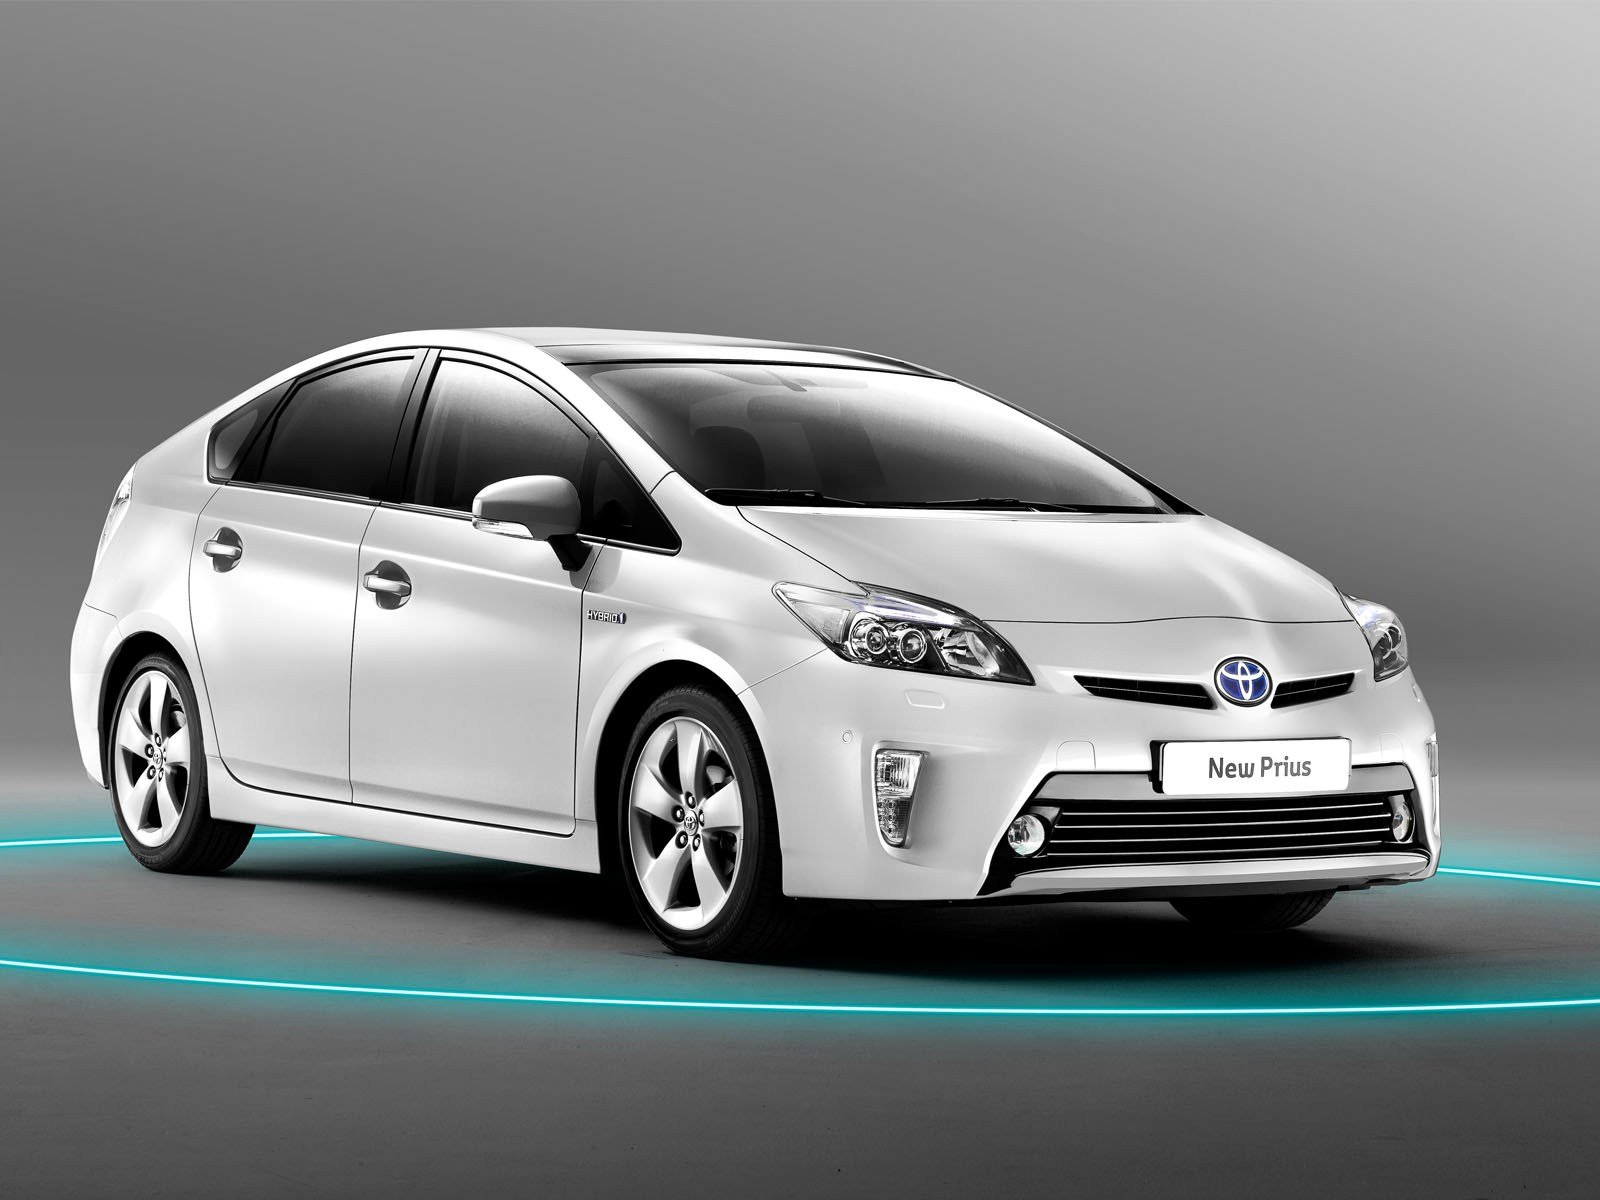 New Toyota Prius New Car 2013 Hd Wallpaper Download On This Month